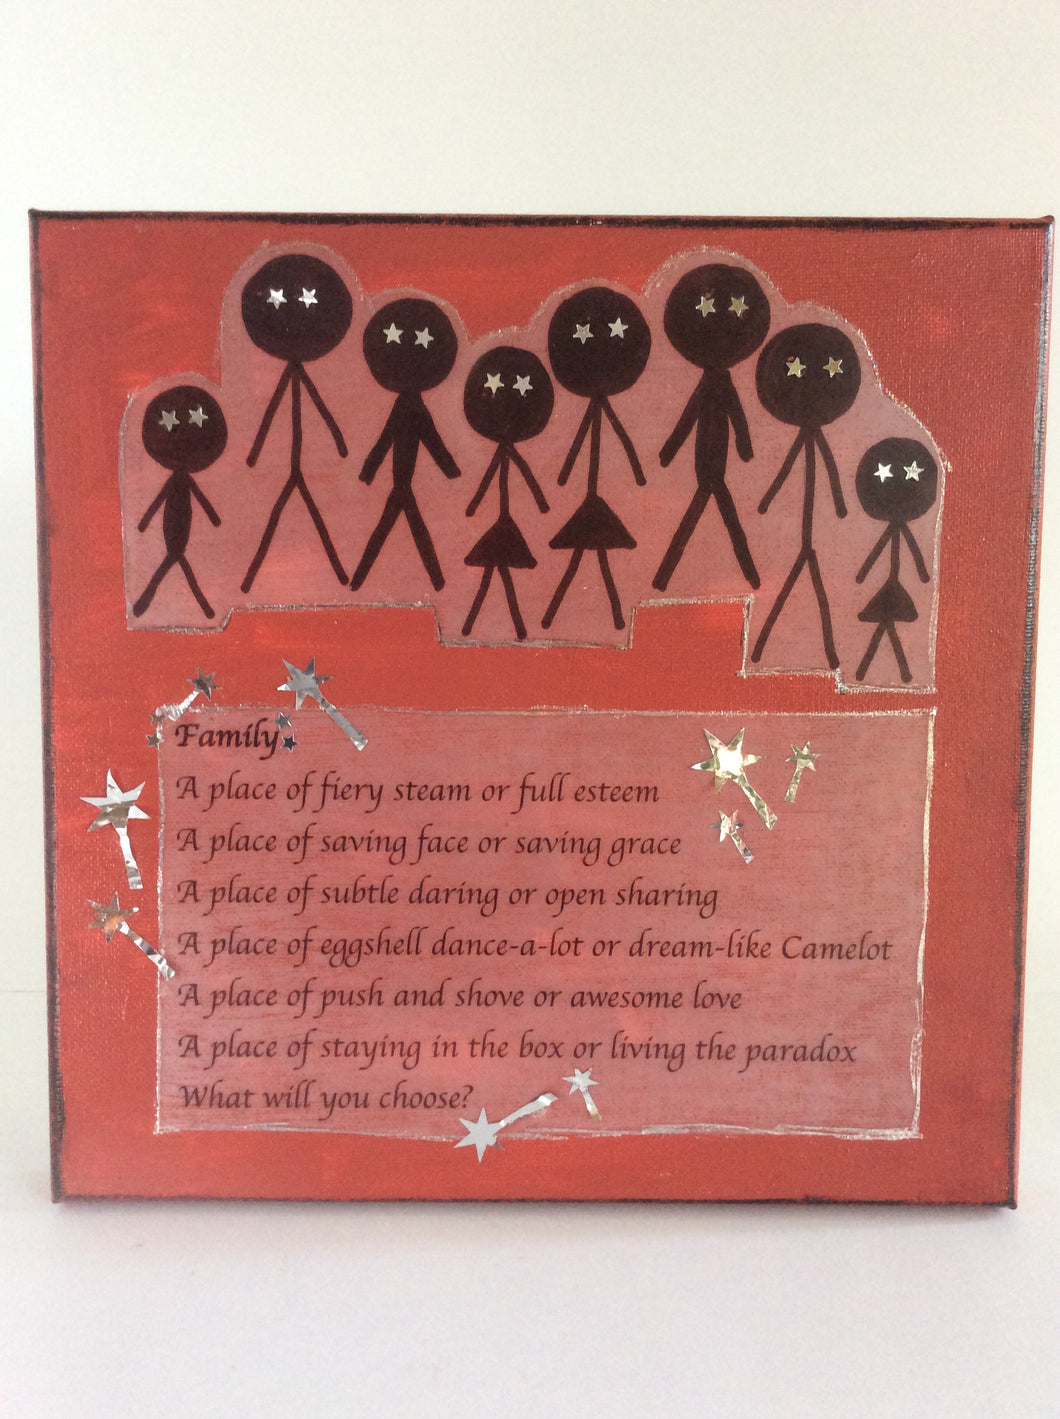 Family is an original poem on canvas from poempieces.com in tangerine